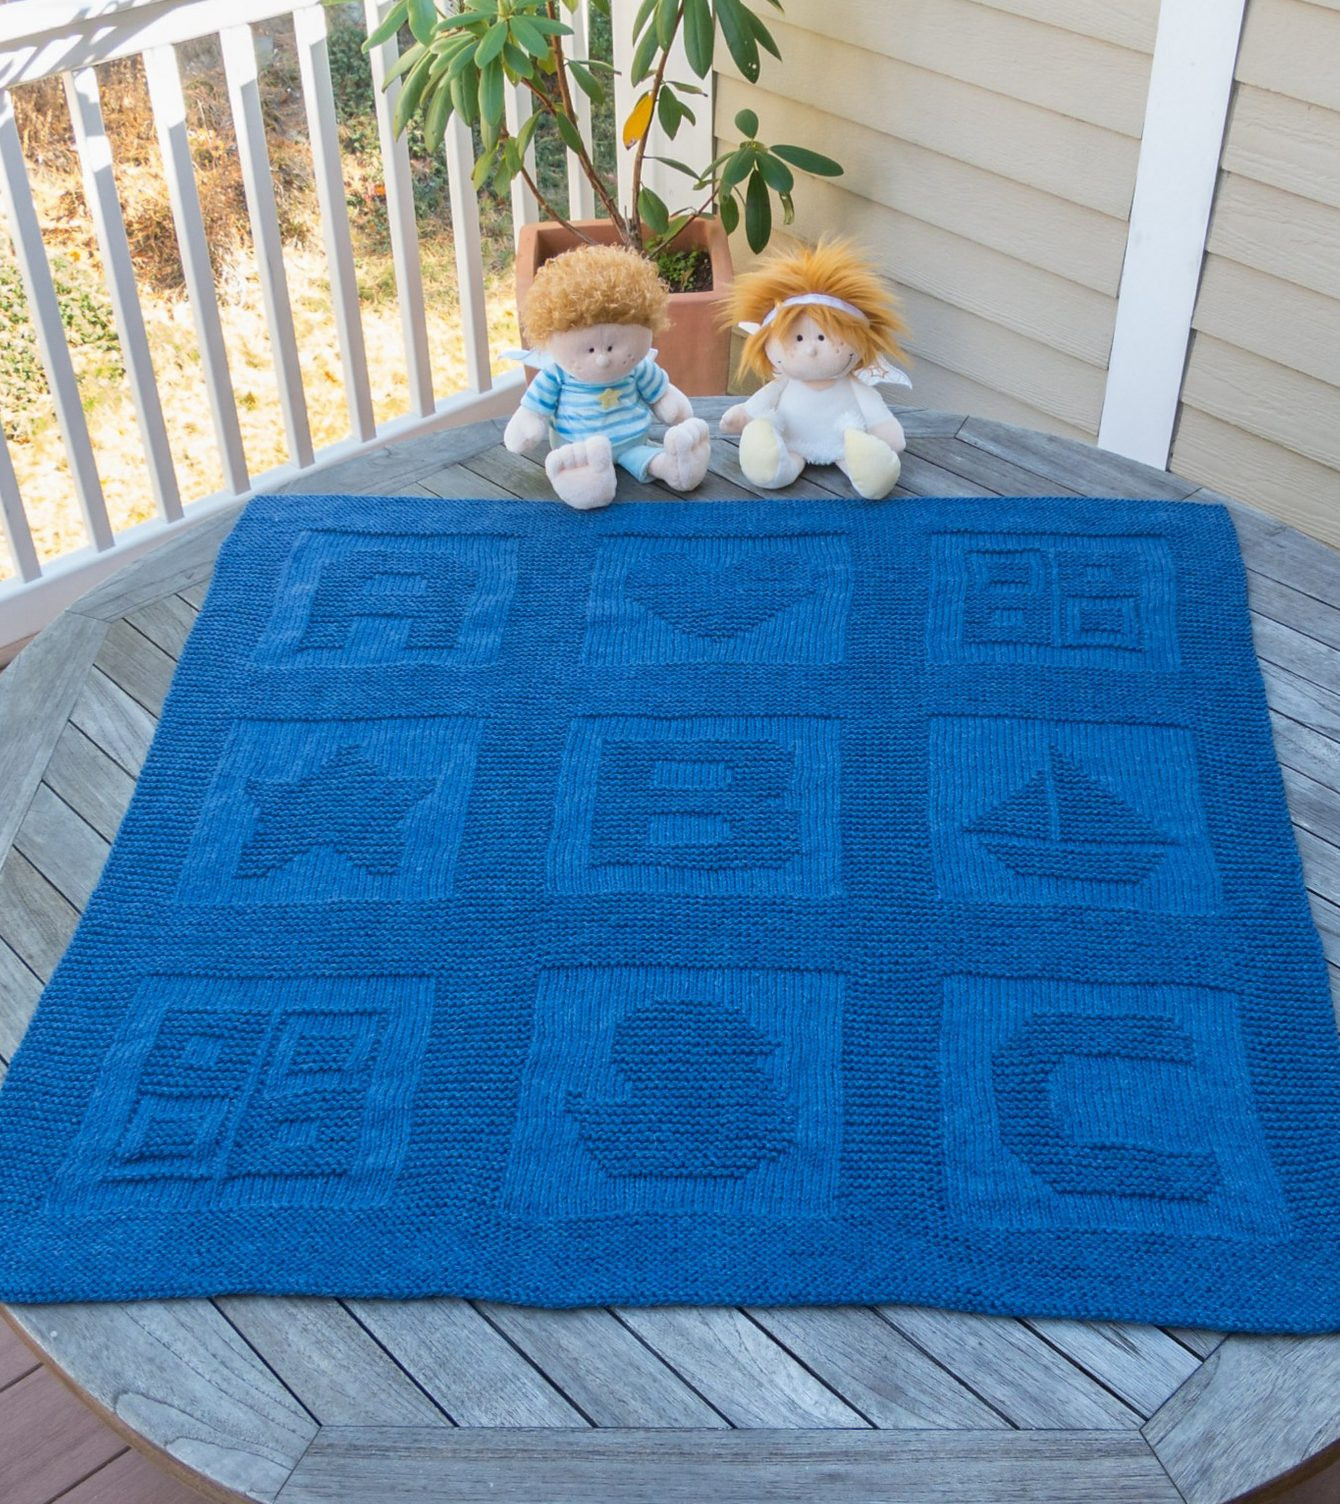 Awesome Knit Baby Blanket to Keep Your Bundle Of Joy Warm and Baby Blanket Size Knit Of Awesome 42 Pictures Baby Blanket Size Knit